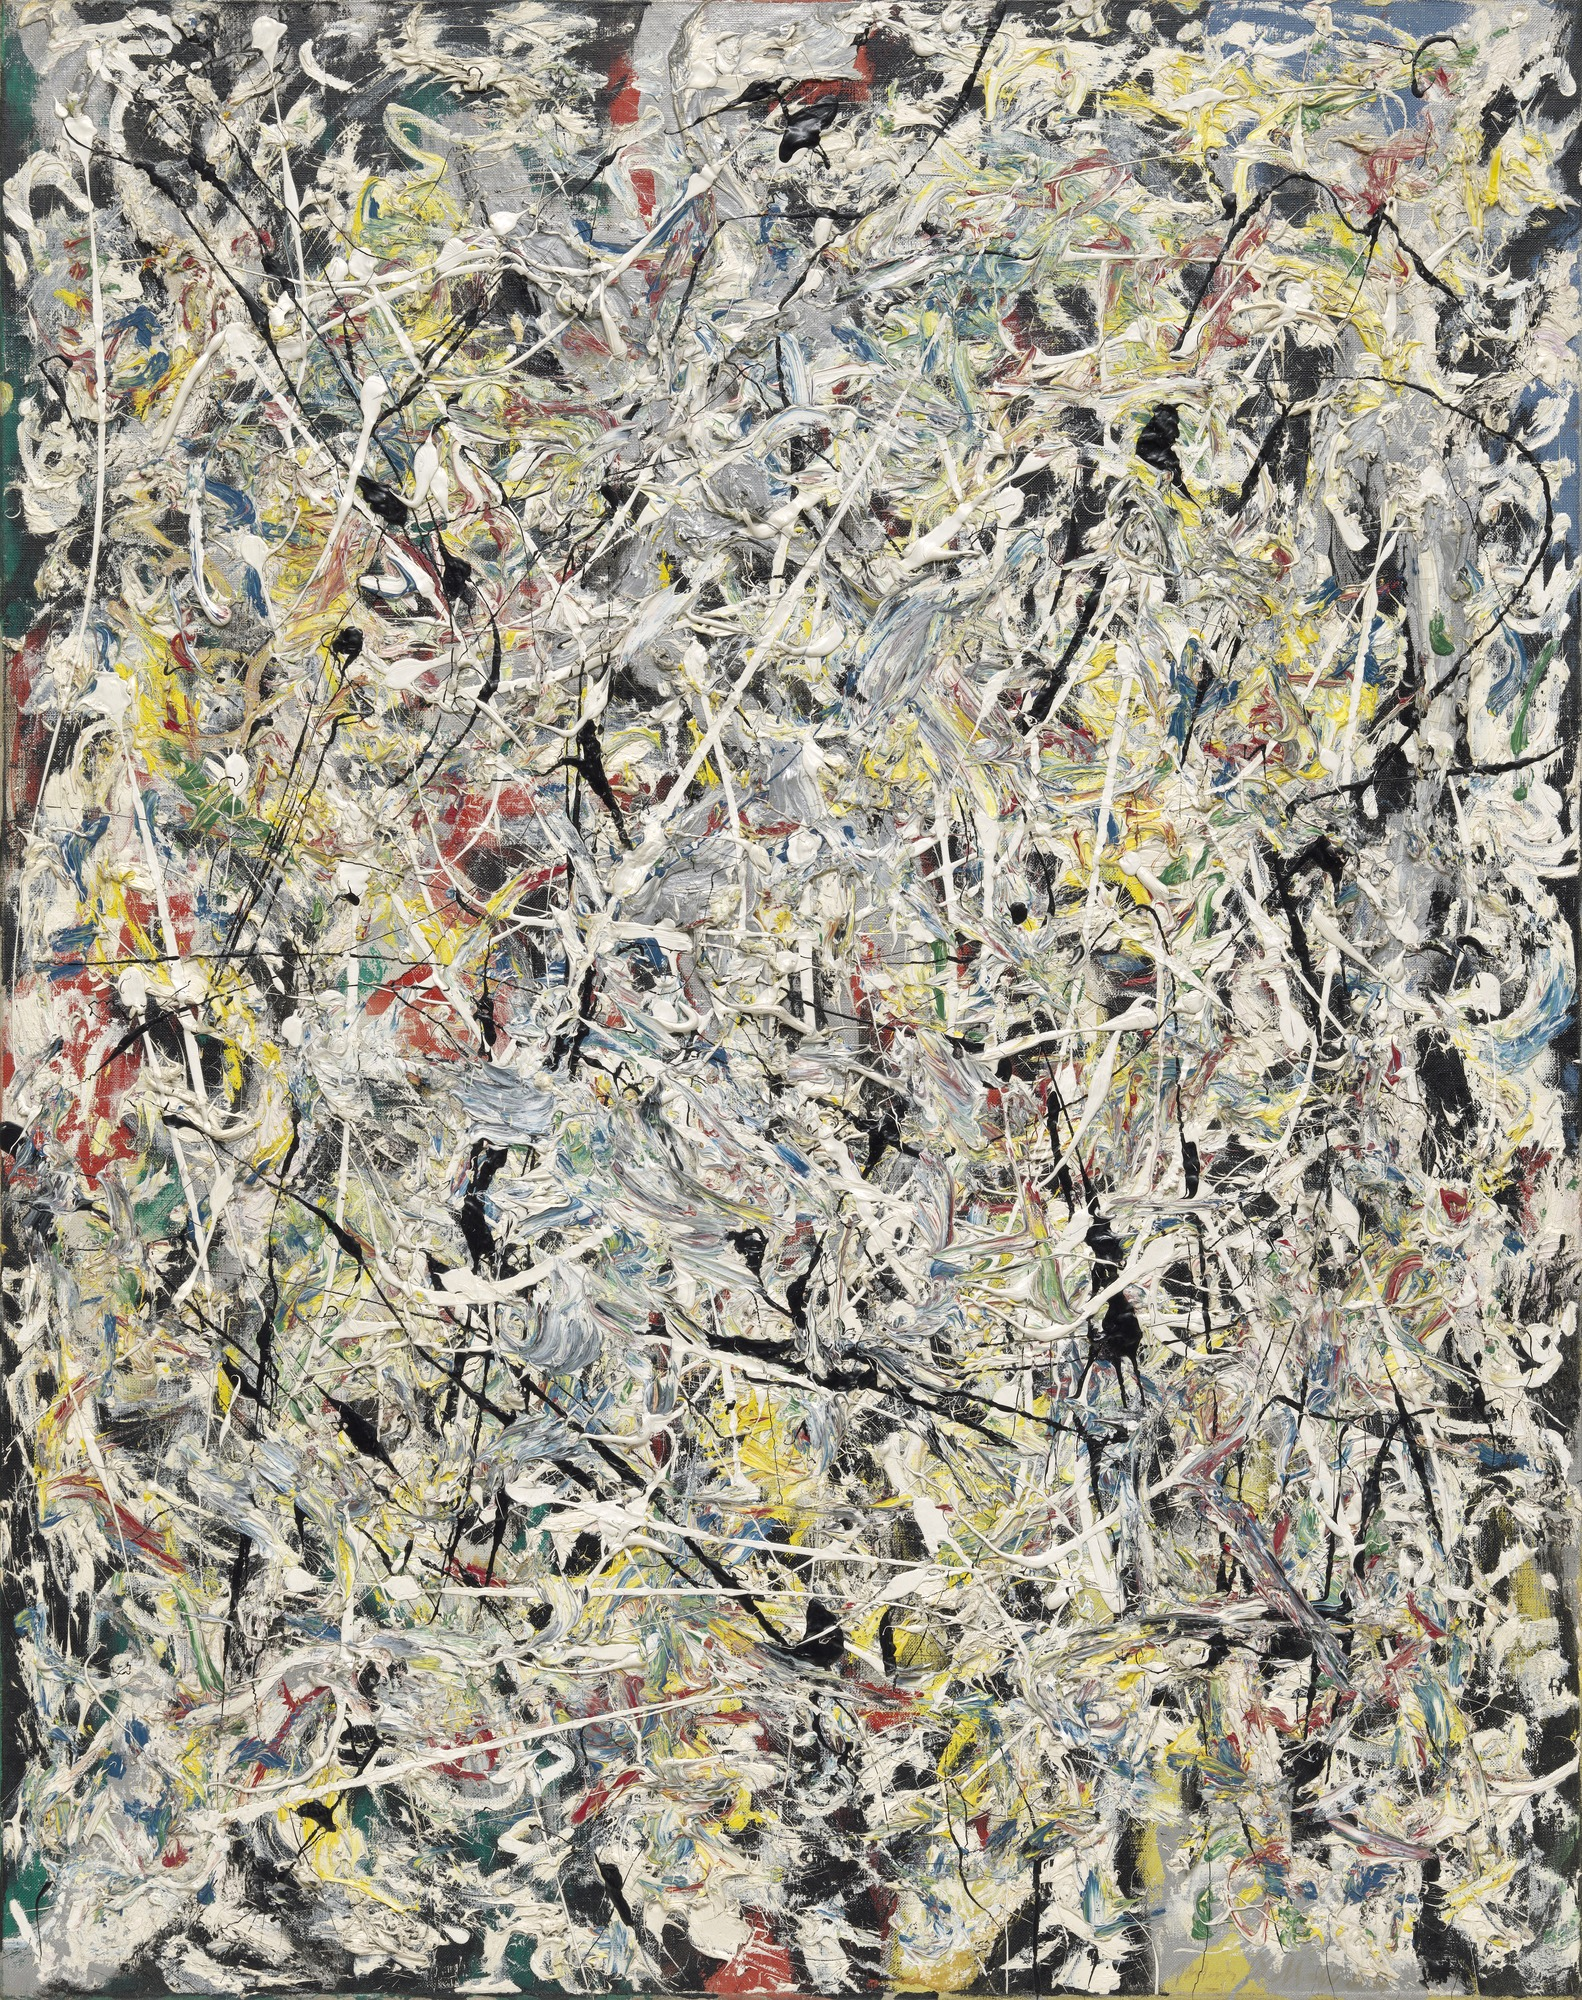 White Light, 1954 — Jackson Pollock